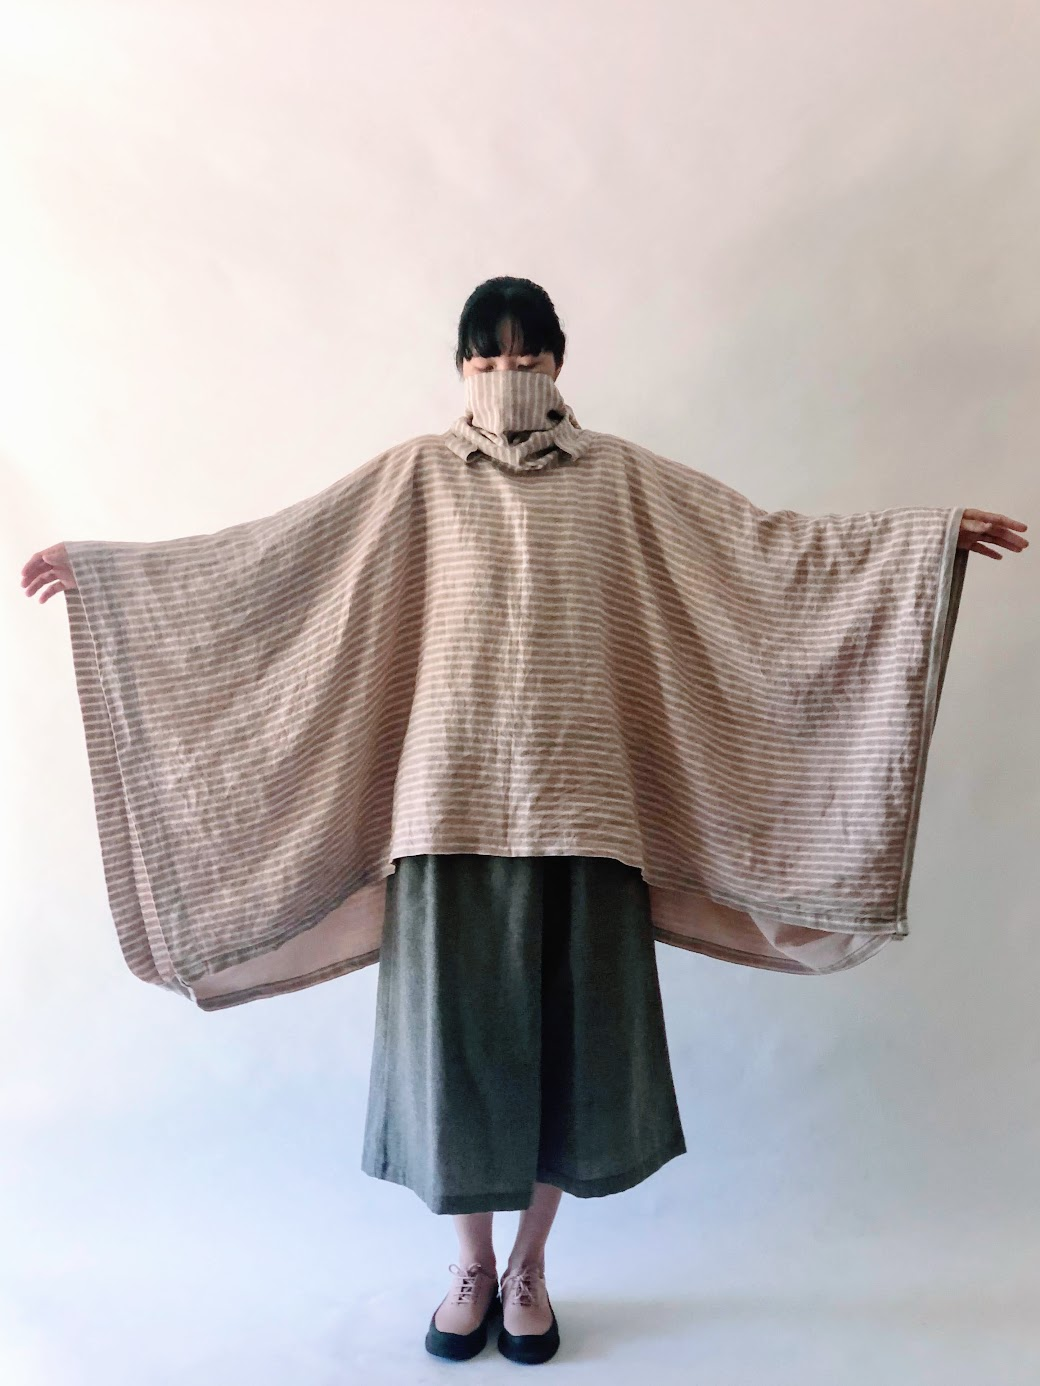 Wearing Handkerchief Dress as Poncho - FAFAFOOM.COM